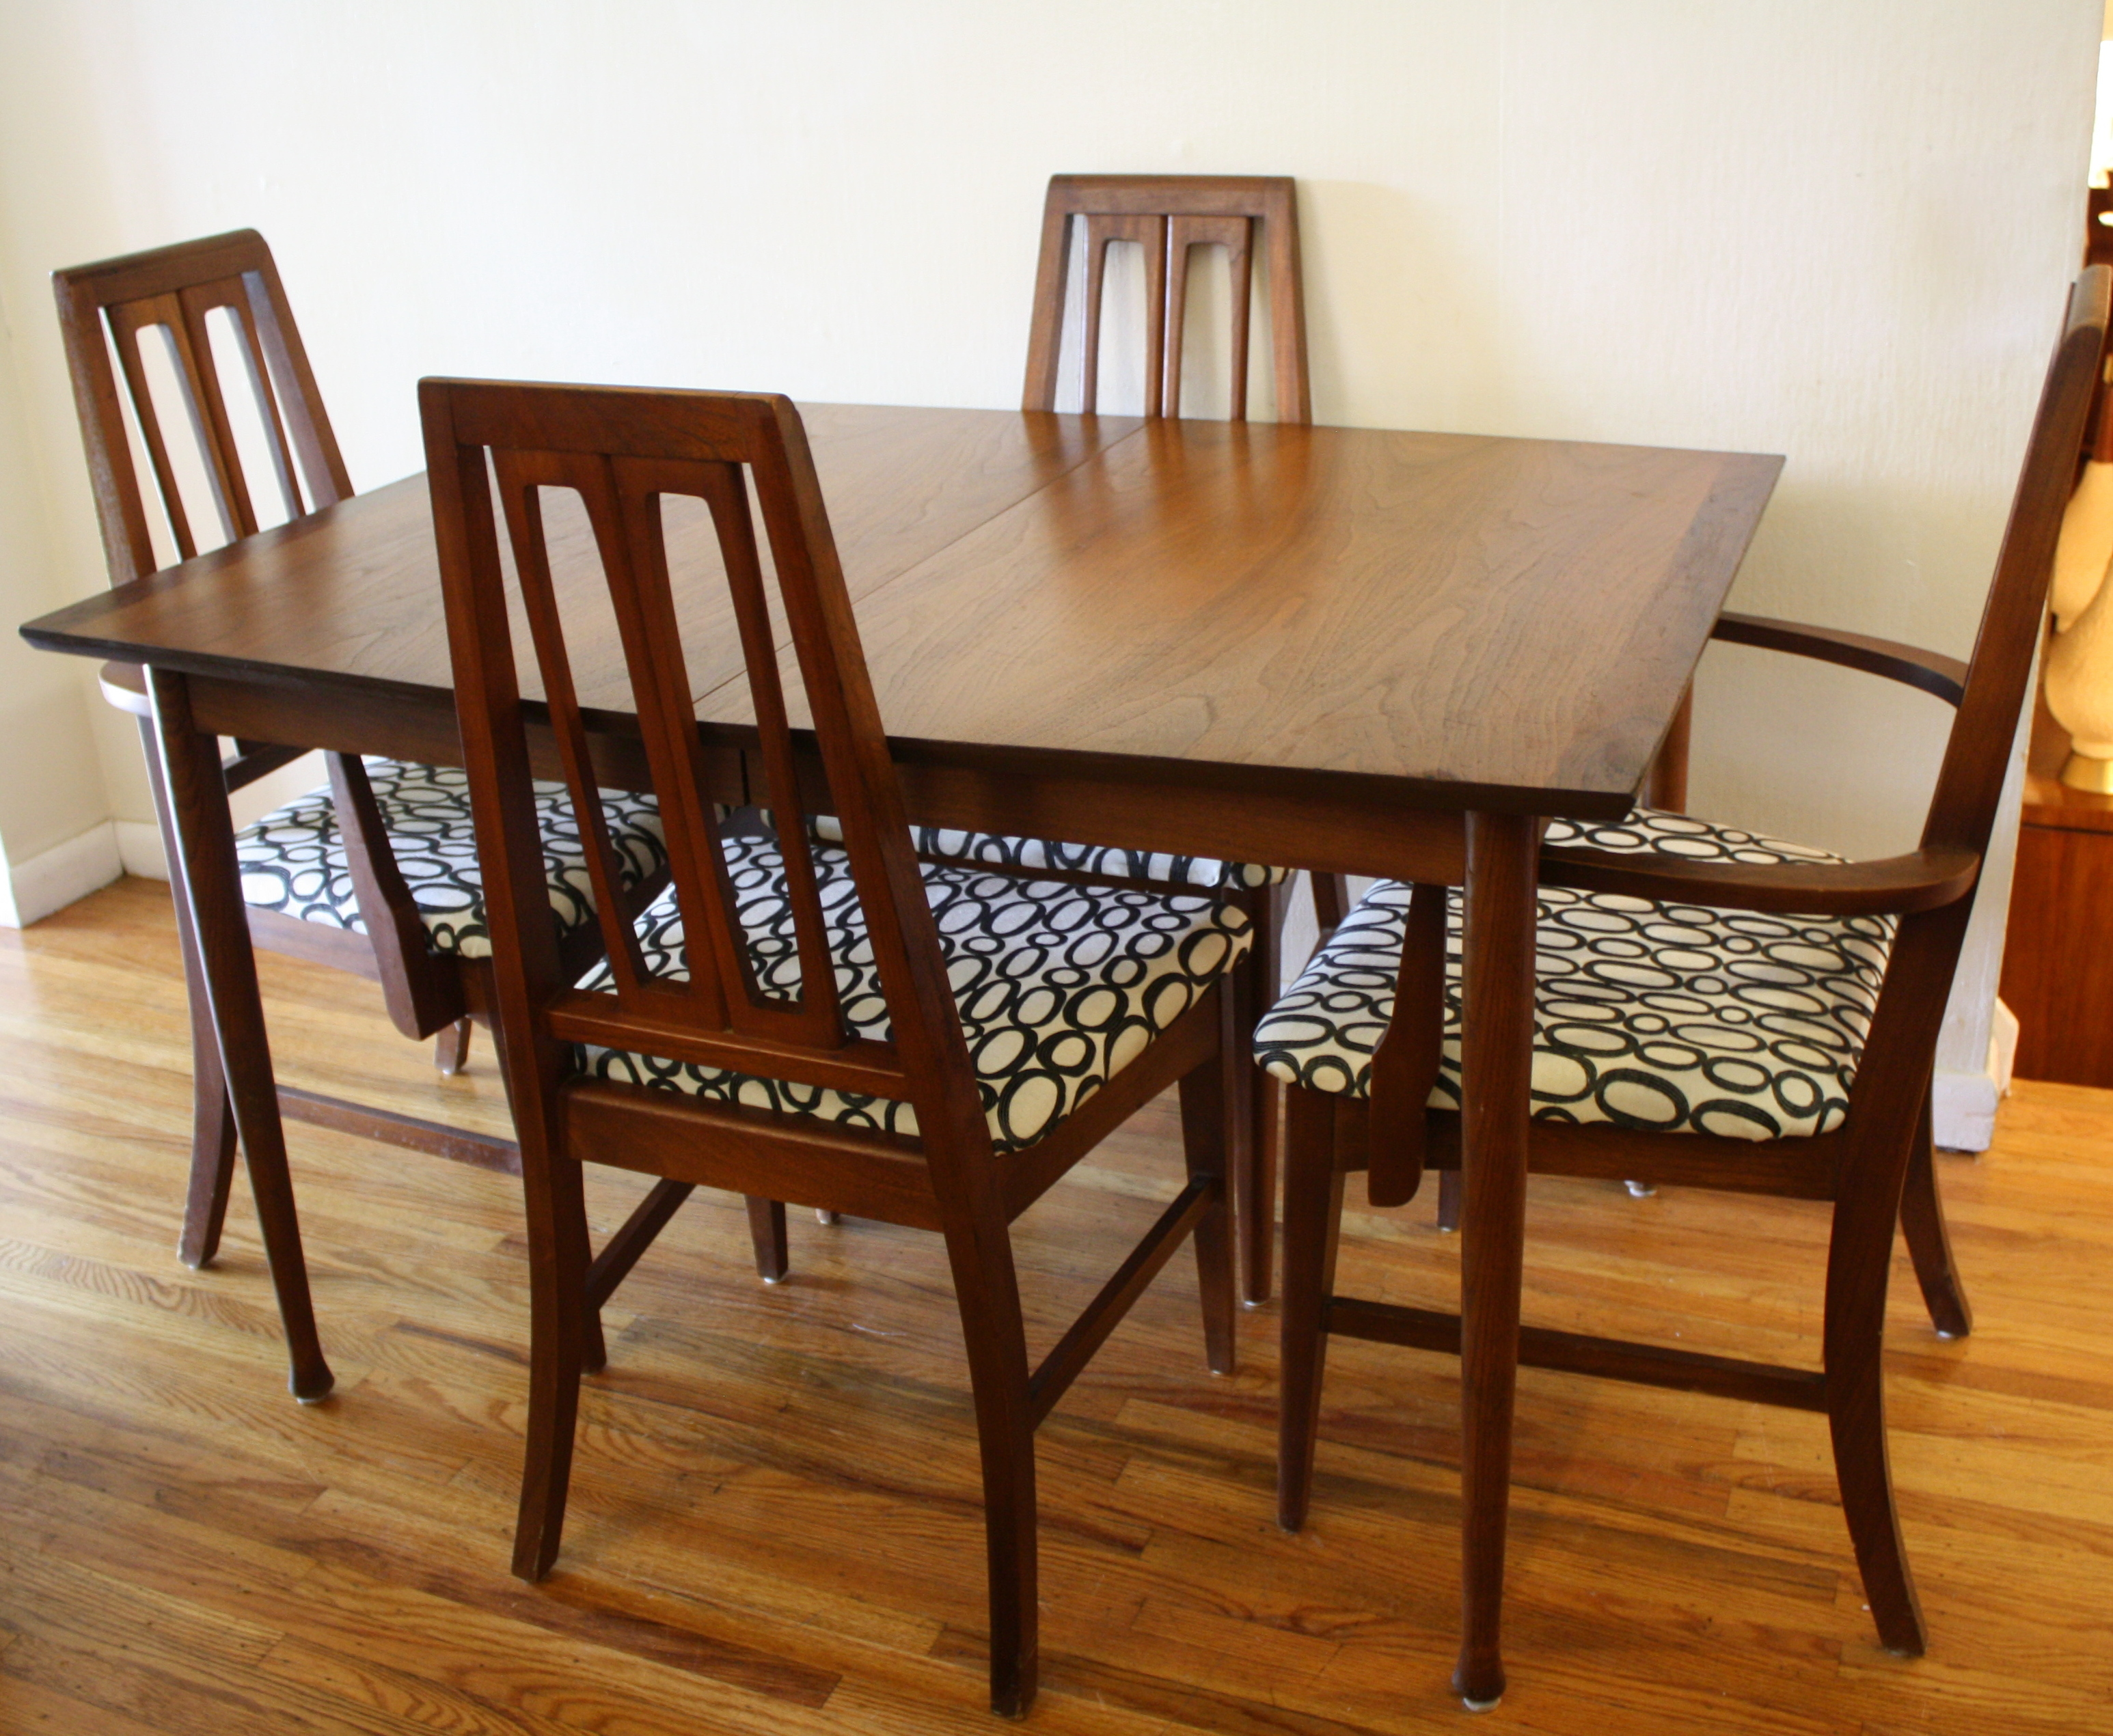 Mid century modern sets of dining chairs picked vintage for Old table modern chairs